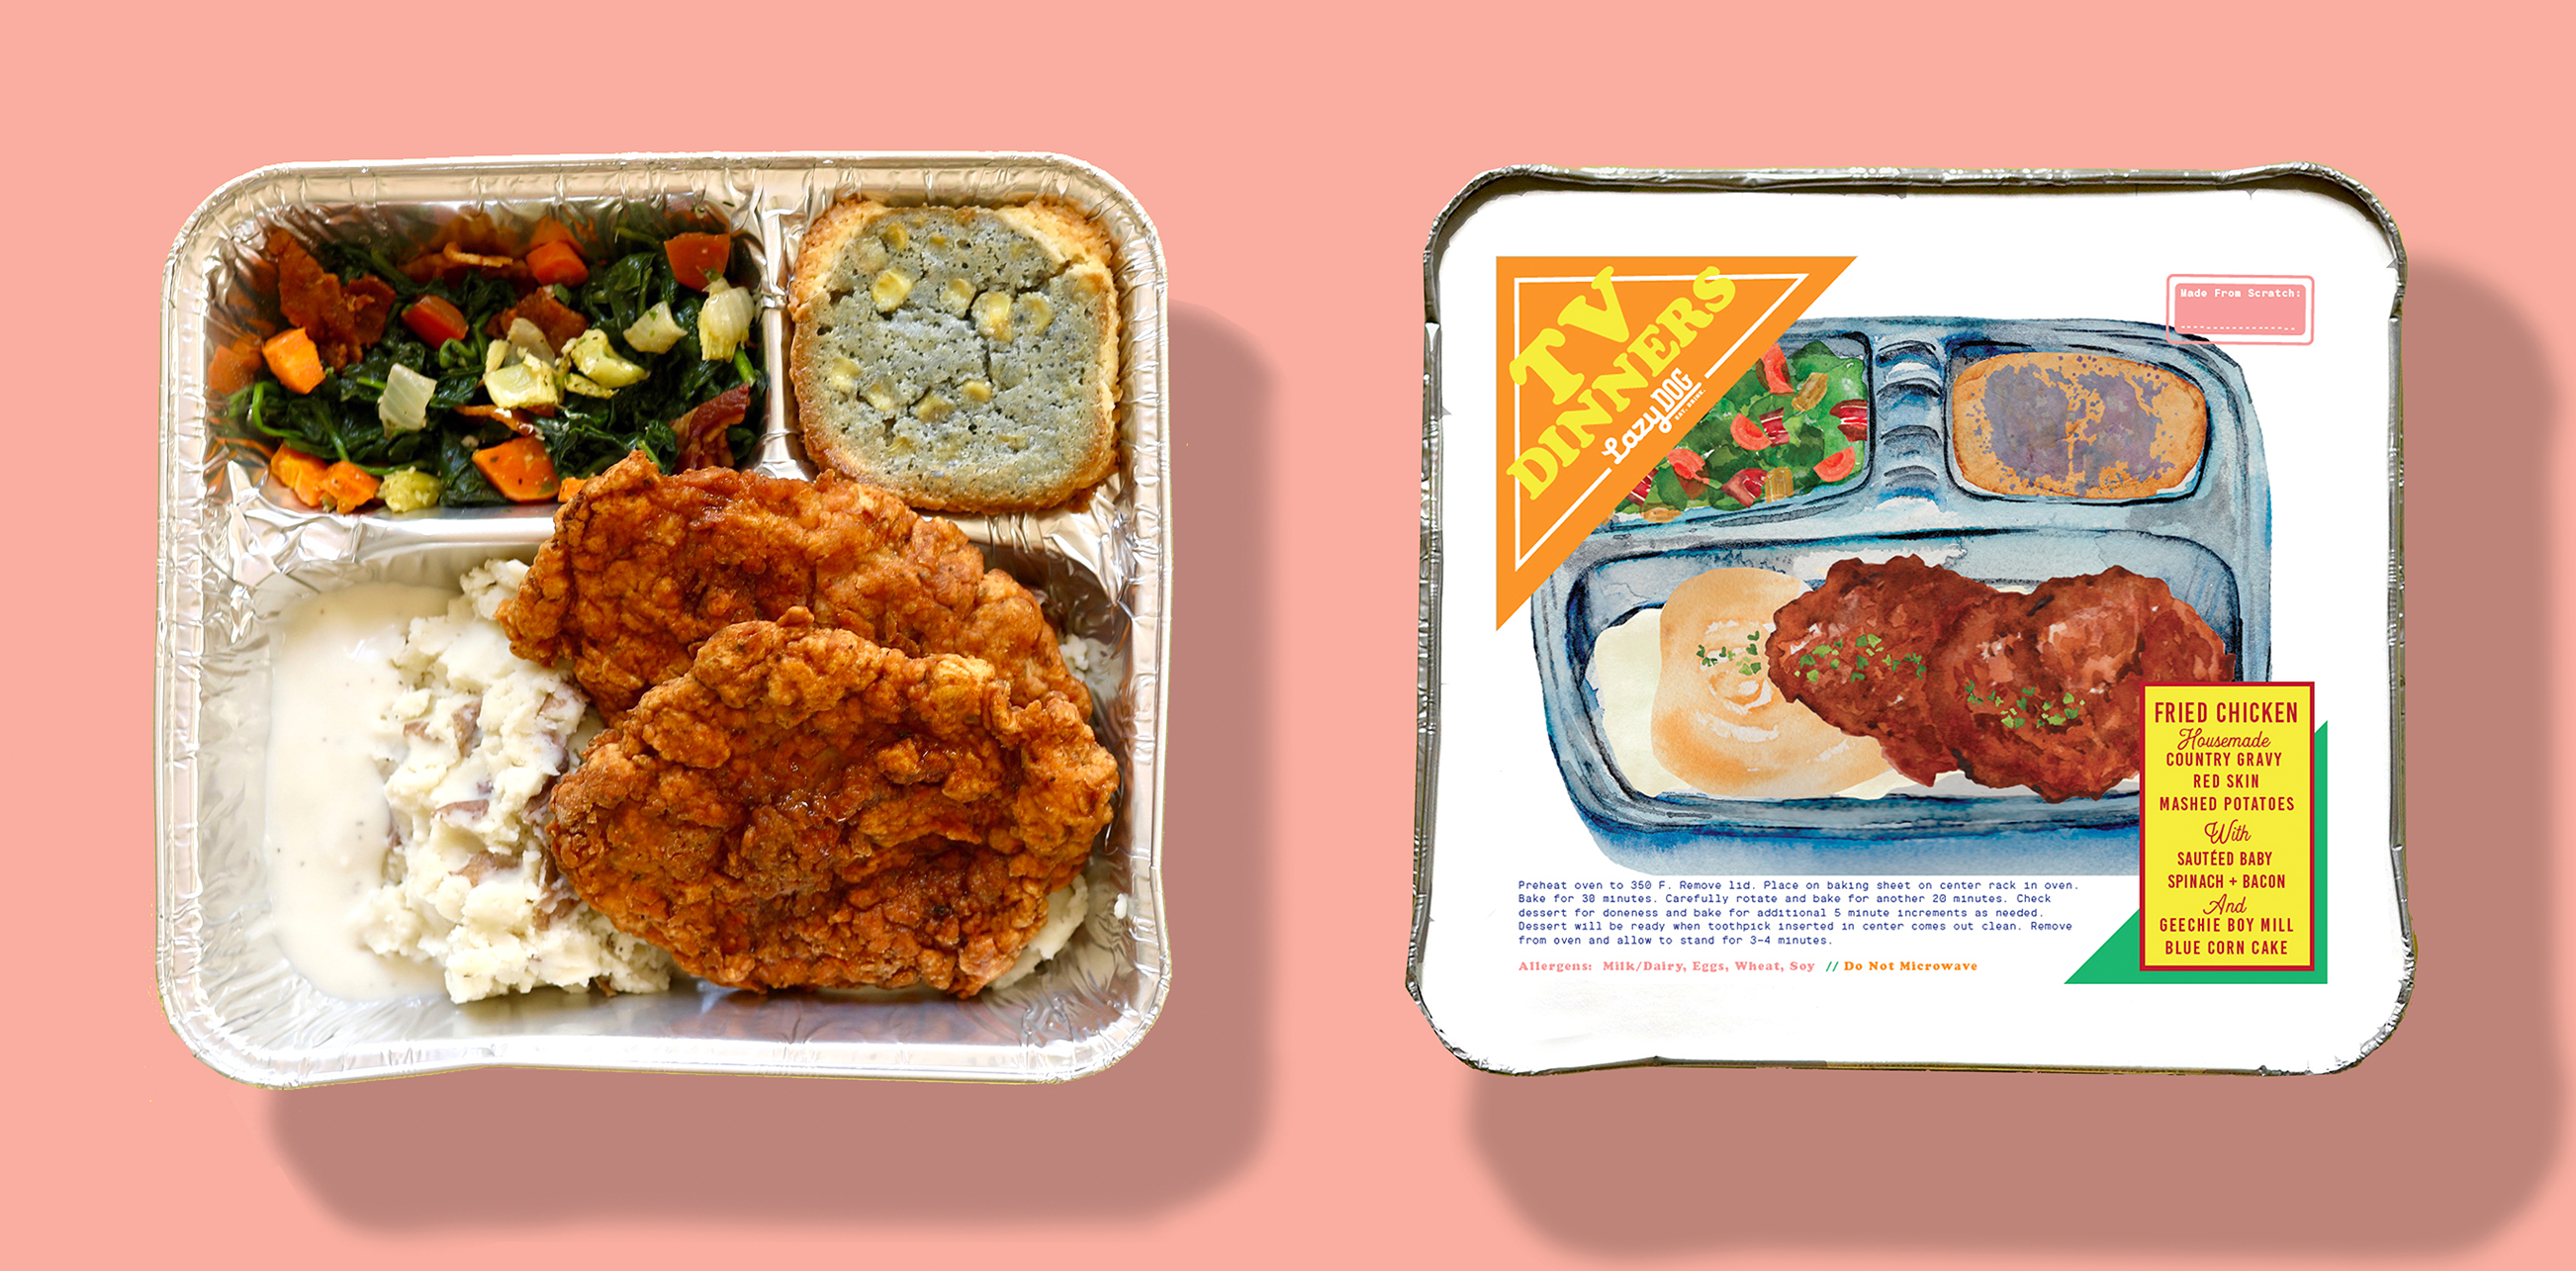 TV Dinners - Fried Chicken